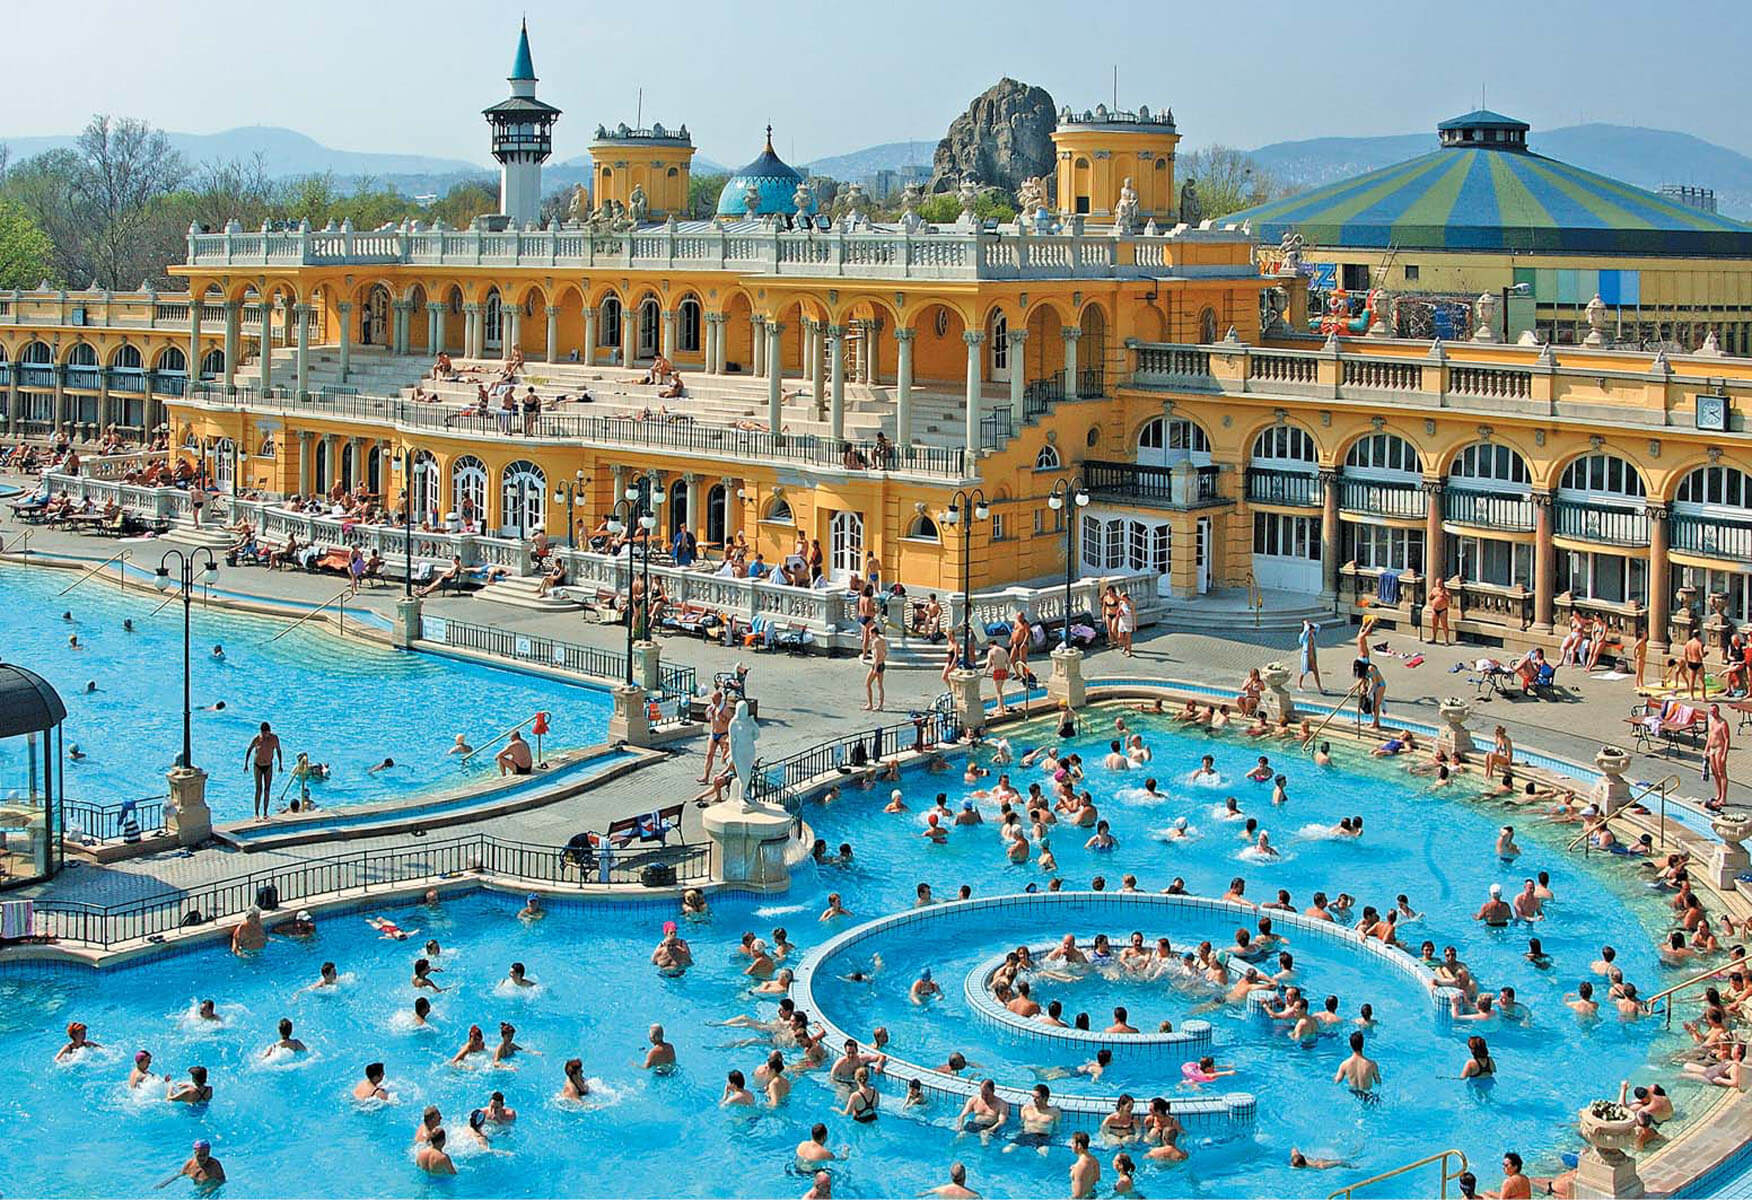 hundreds of people enjoying in an open pool